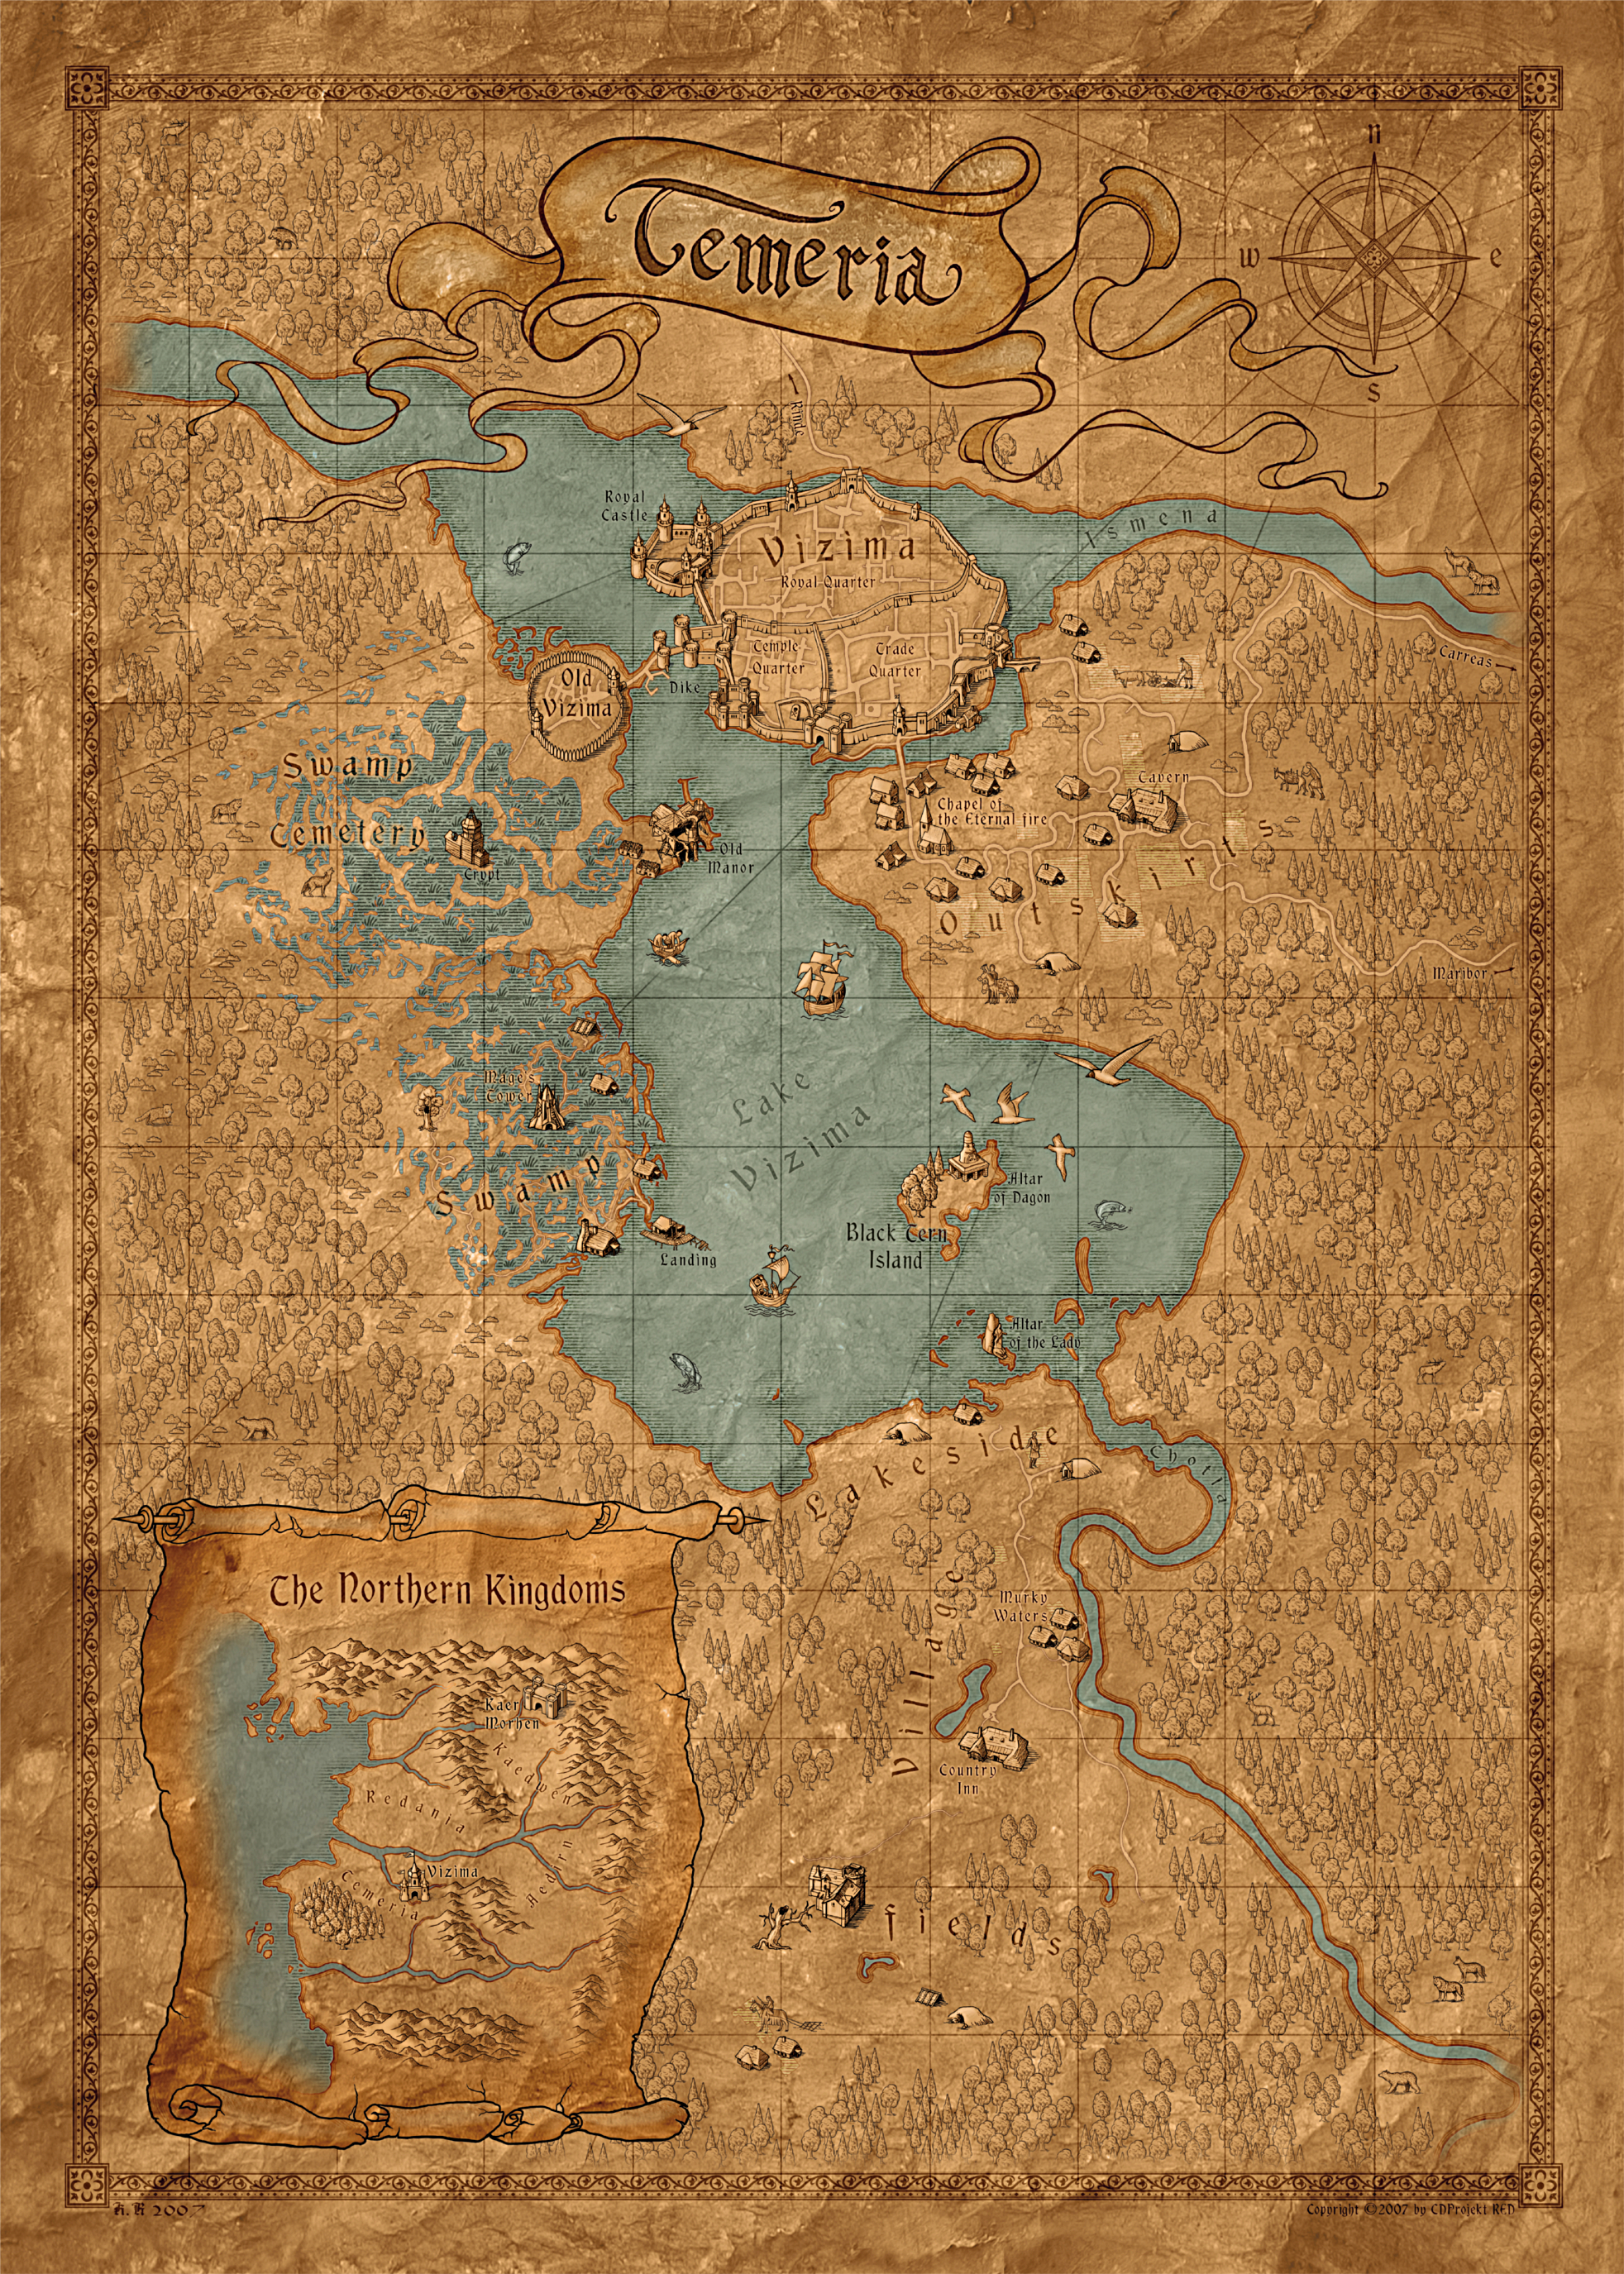 Any game maps that show where events from the books took place httpvignette1acookiewitcherimages226gameworldmapgrevisionlatestcb20160707172750 gumiabroncs Image collections